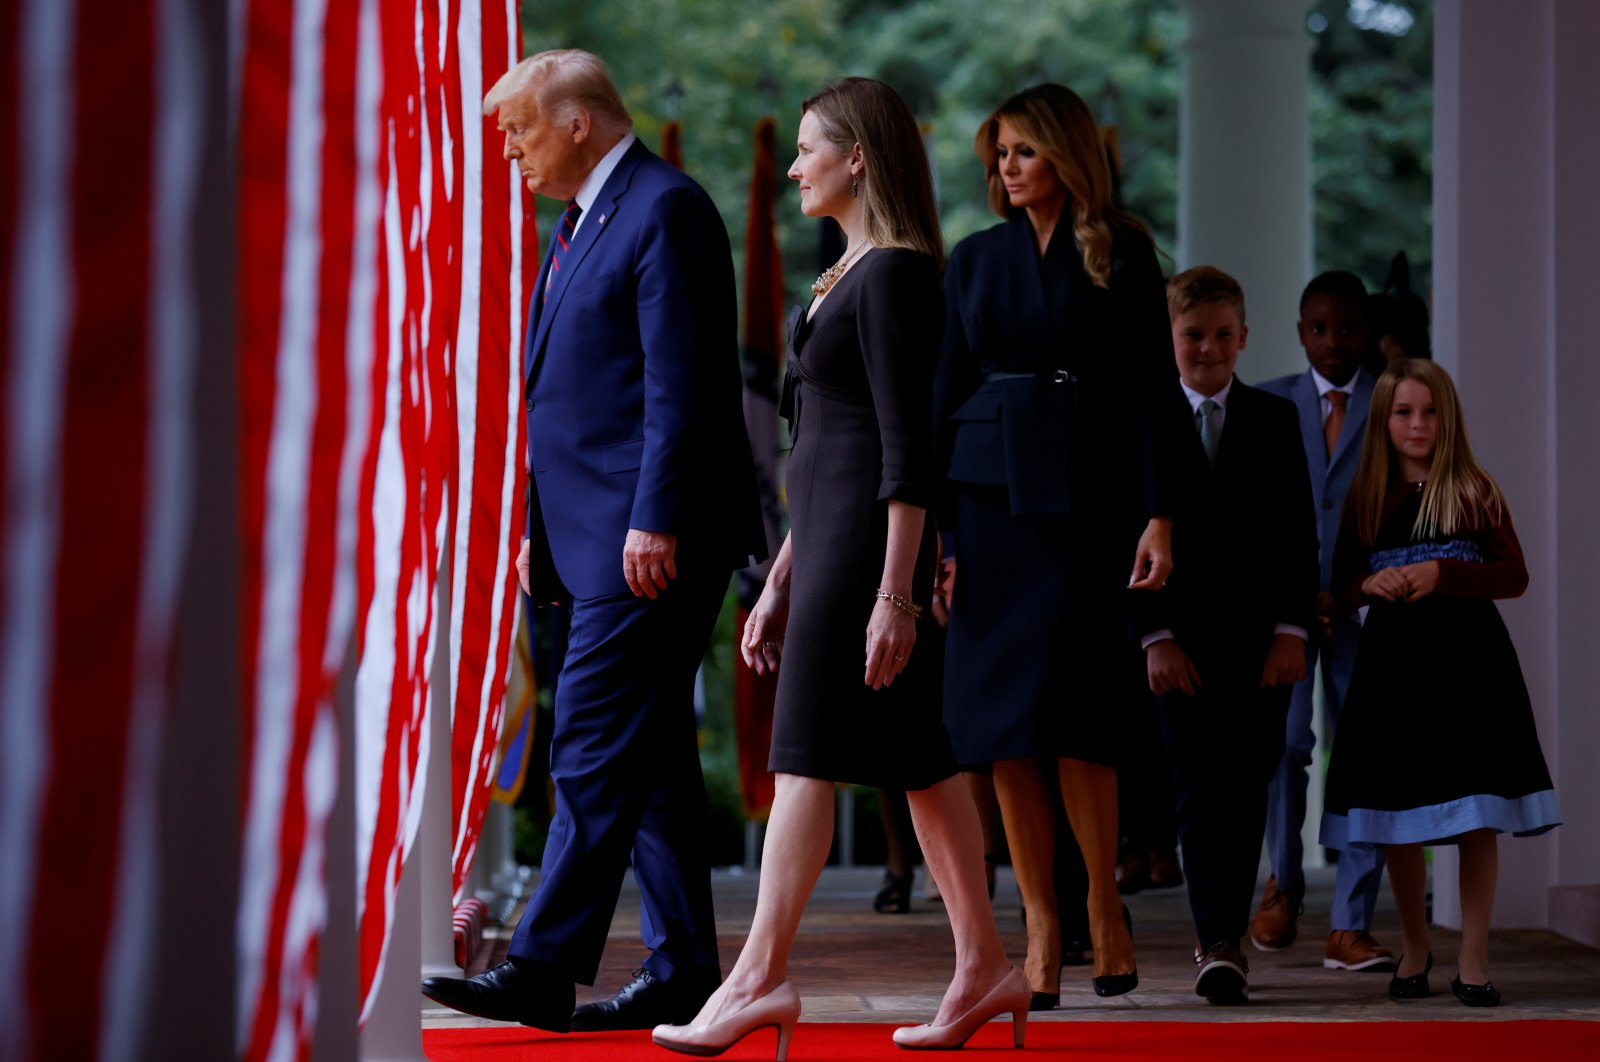 U.S. President Donald Trump arrives to hold an event to announce his nominee for the U.S. Court of Appeals for the Seventh Circuit Judge Amy Coney Barrett to fill the Supreme Court seat left vacant by the death of Justice Ruth Bader Ginsburg, who died on Sept. 18, at the White House in Washington, D.C., Sept. 26, 2020. (Reuters Photo)